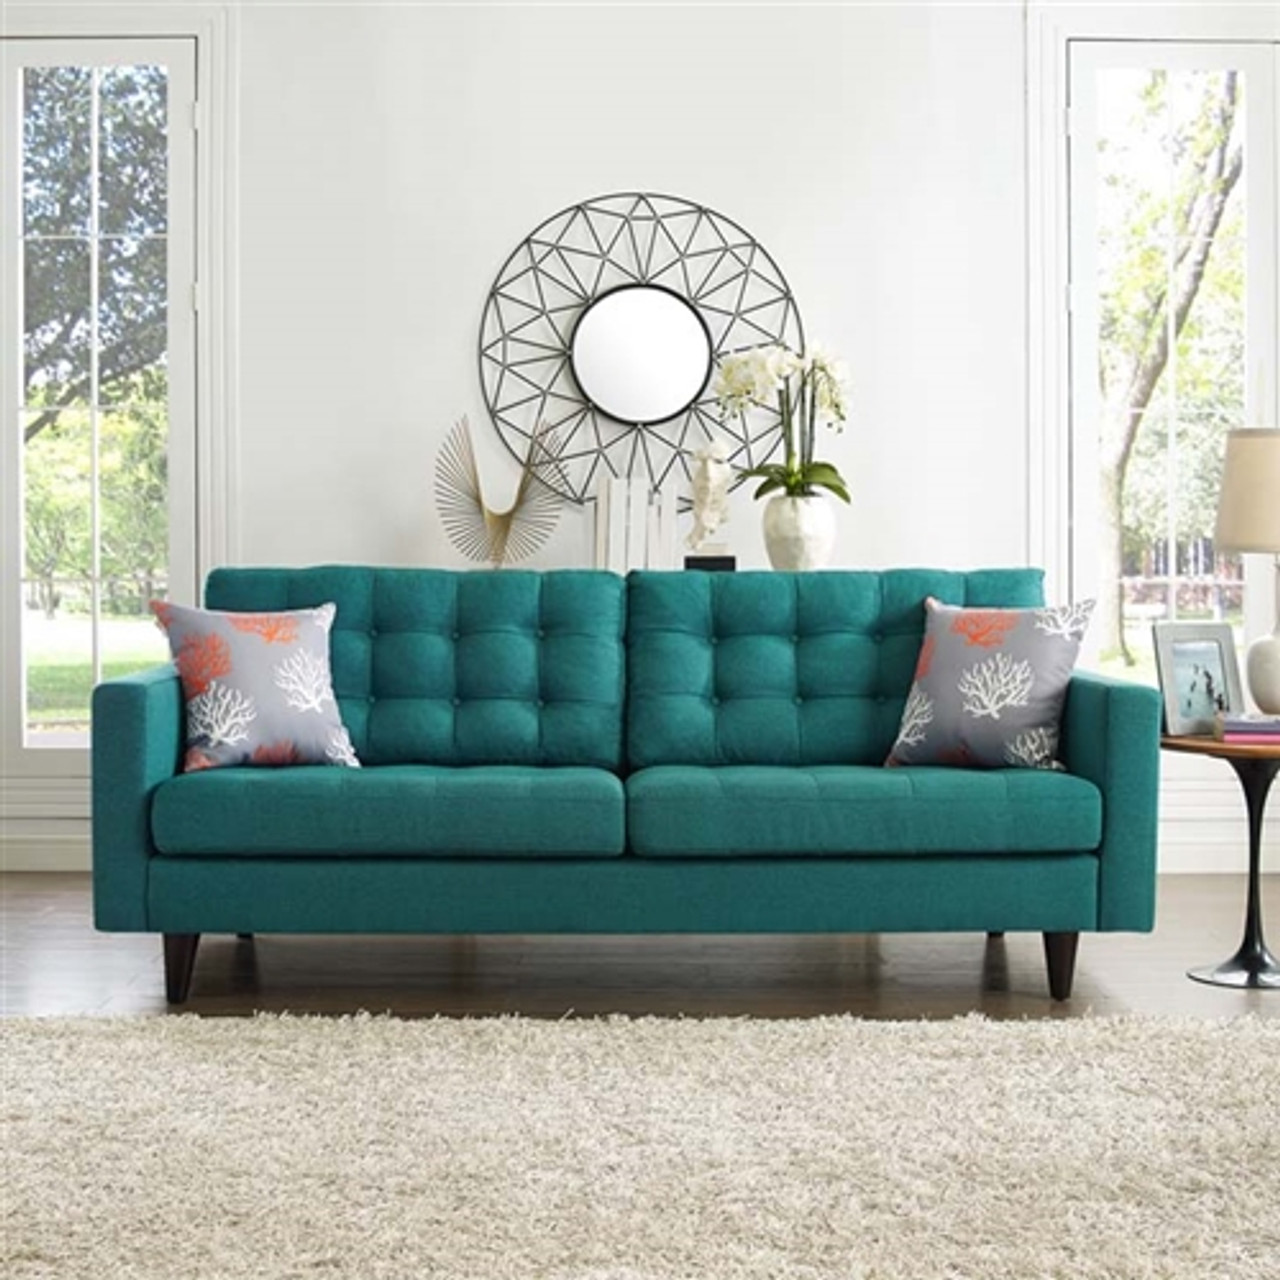 Modway Empress Mid Century Tufted Sofa (10 Color Options!)